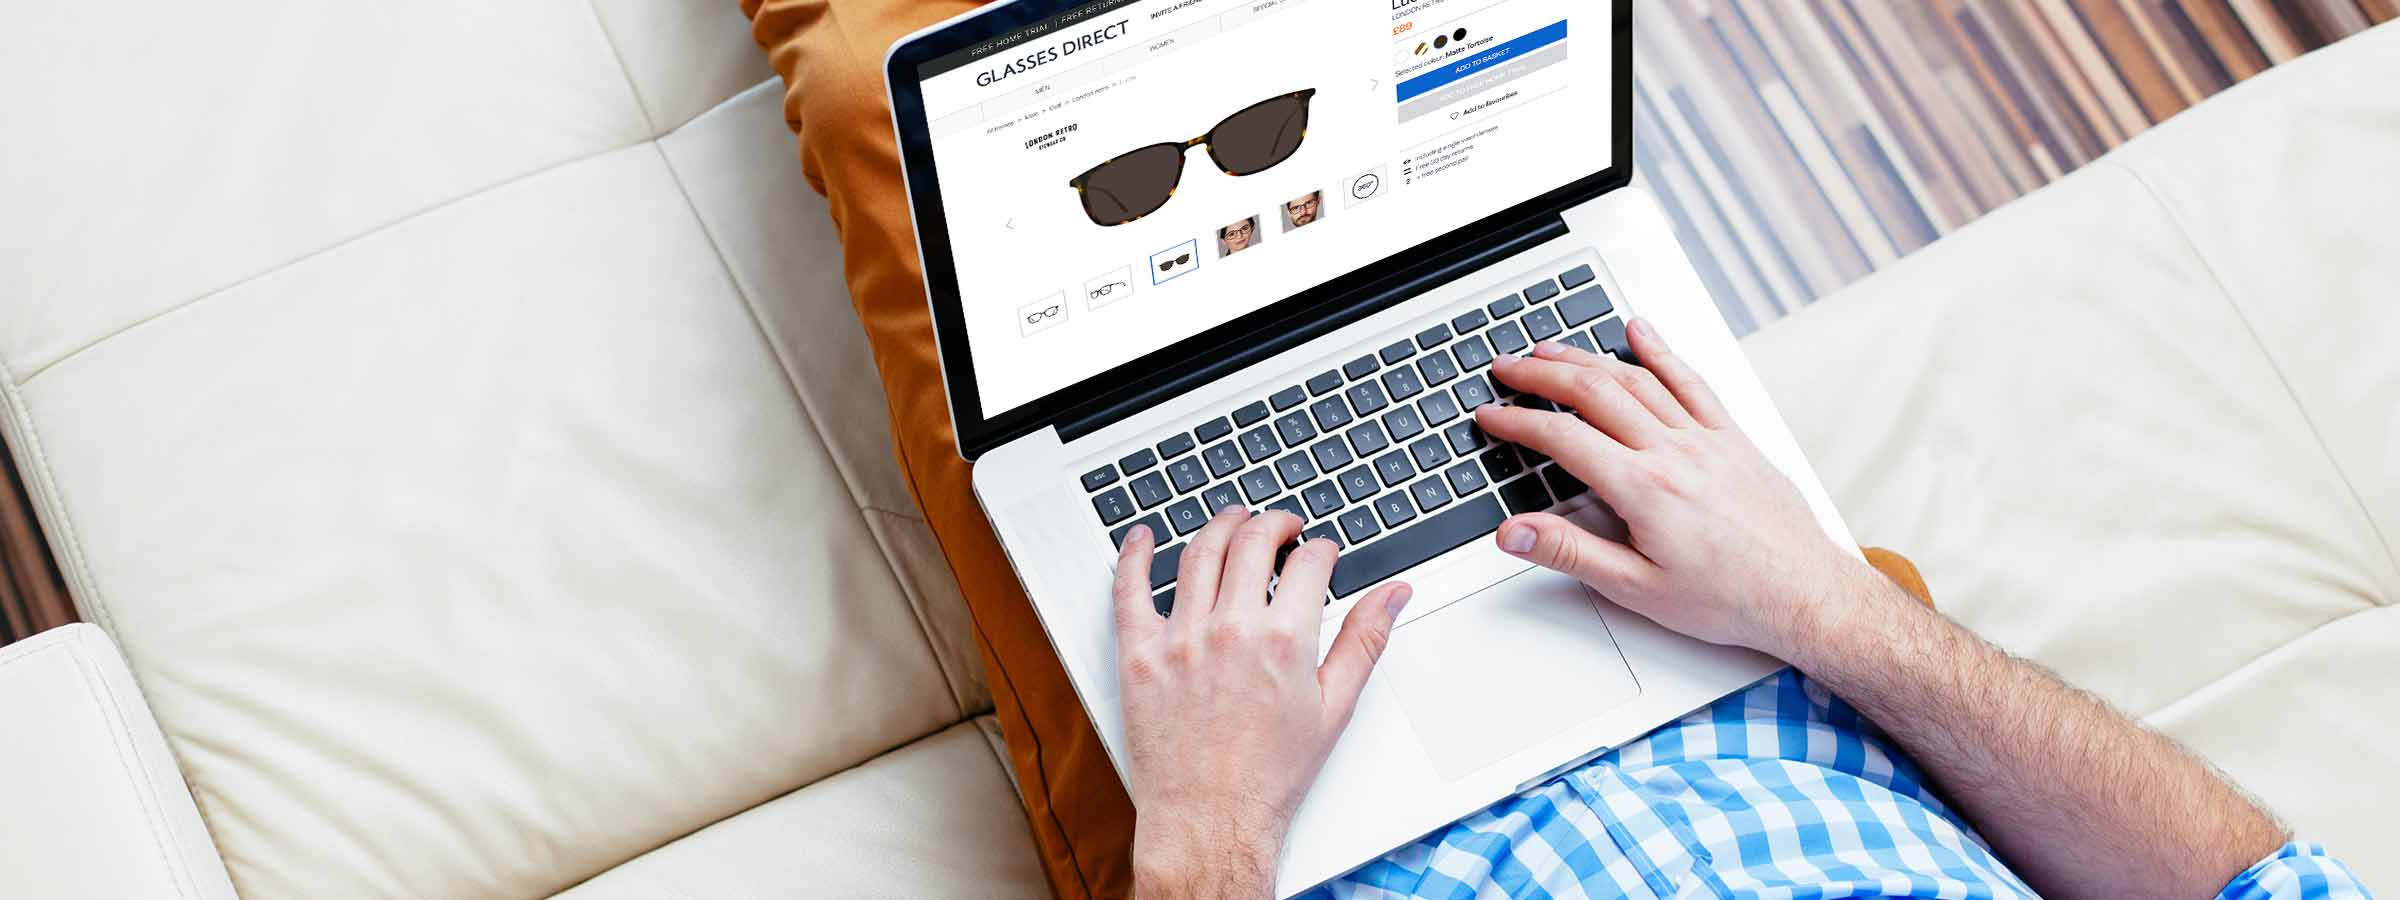 A man looking at a pair of prescription sunglasses on Glasses Direct on his laptop